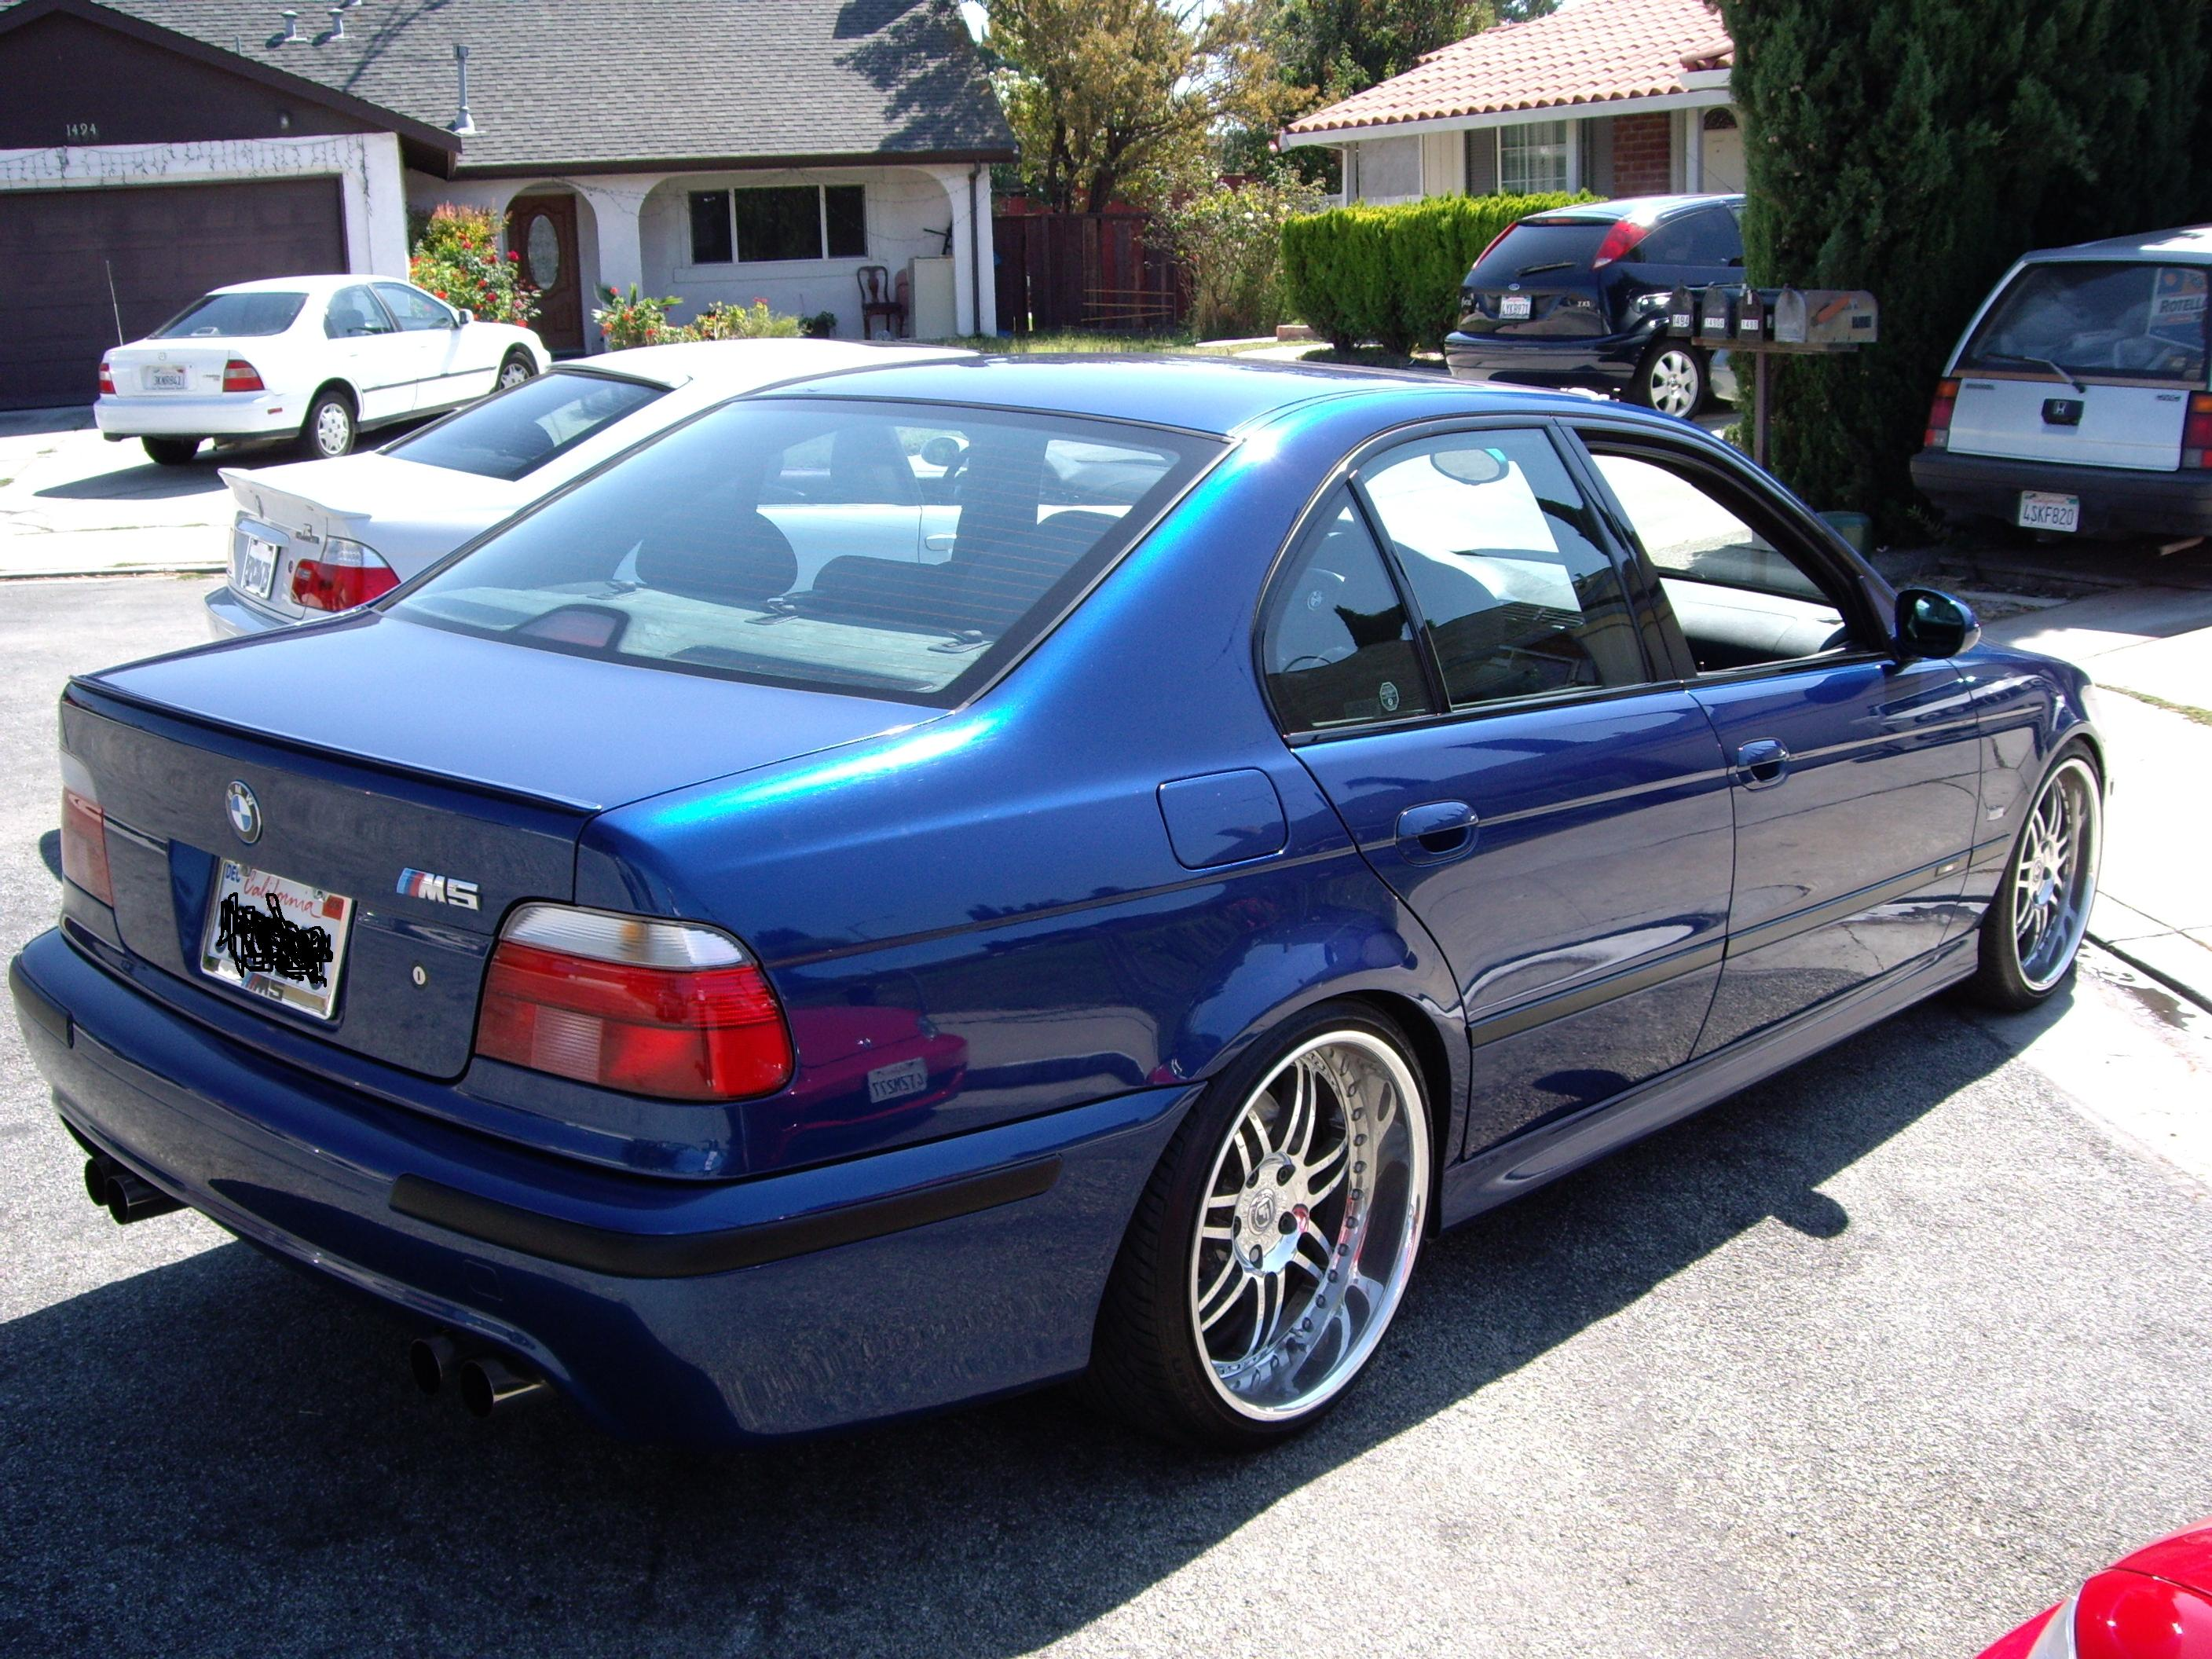 Cars For Sale In Nashville Tn >> Anyone Interested in a Clean as nice as you'll find upgraded Blue E39 M5? - BMW M5 Forum and M6 ...